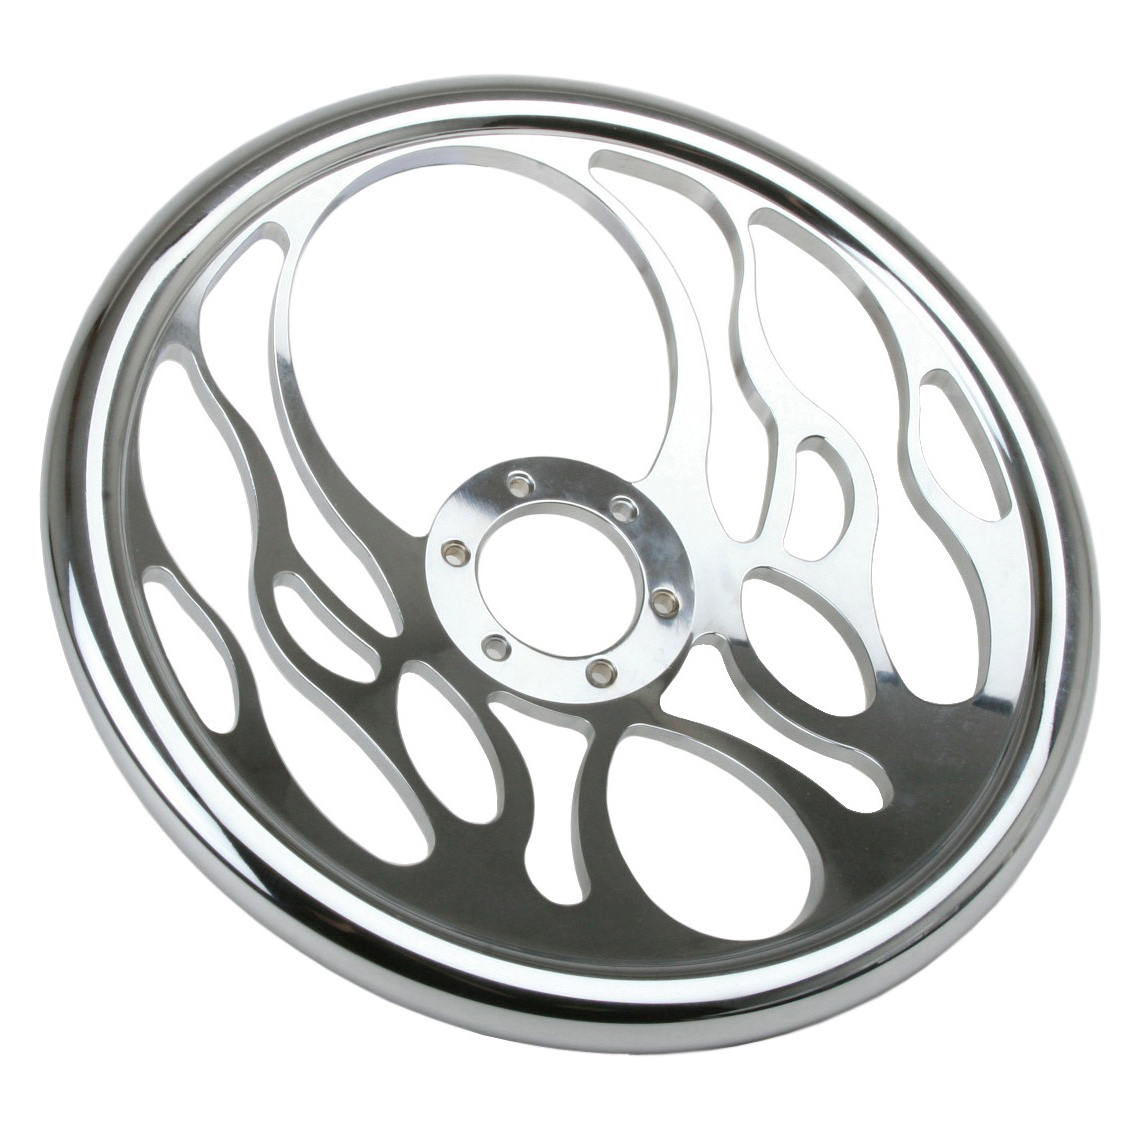 Aluminum & Stainless Steel Steering Wheels